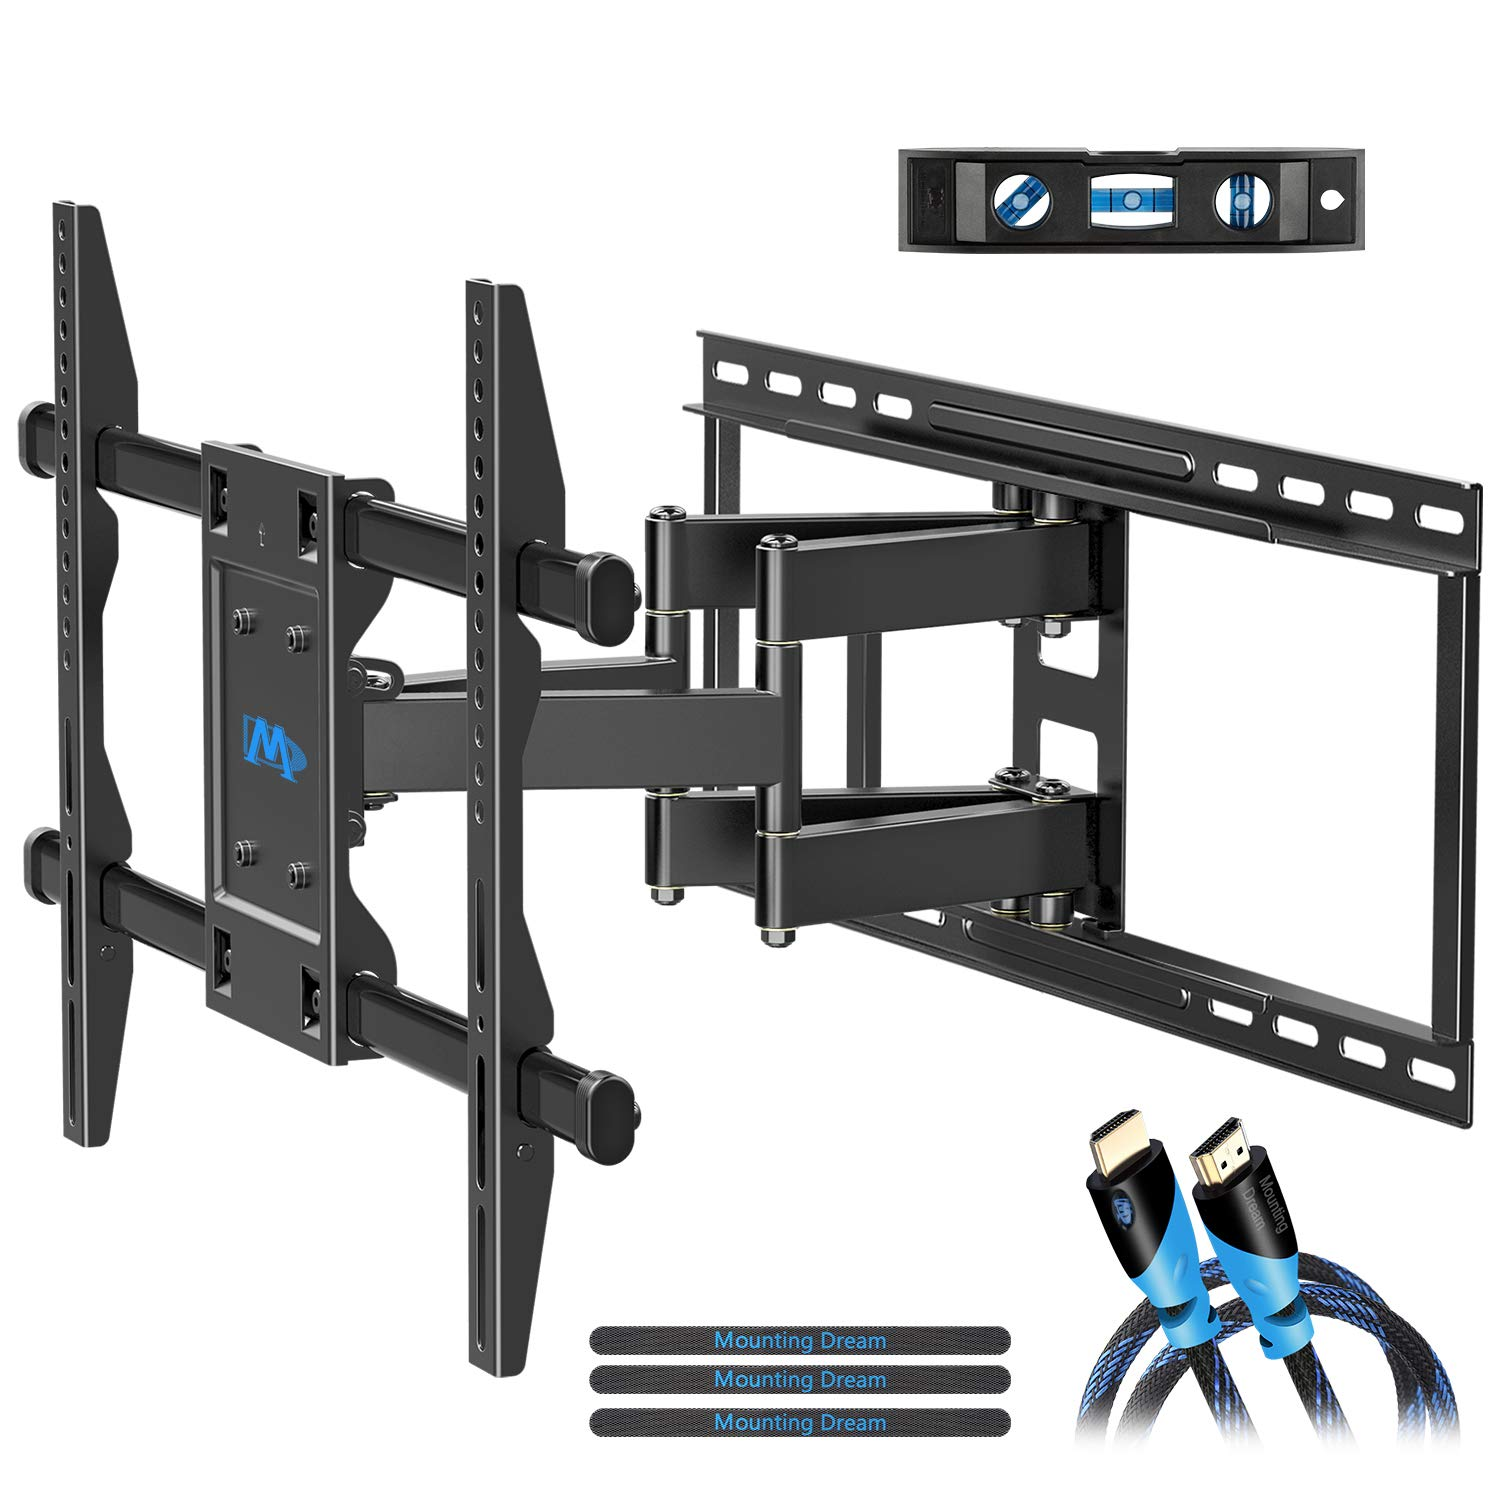 Mounting Dream Full Motion TV Wall Mount Bracket for most of 42-70'' LED, LCD, OLED Plasma TVs, 16'', 18'', 24'' Wood Studs Easy for TV Centering Design, Up to VESA 600 x 400mm 100 lbs MD2296-24